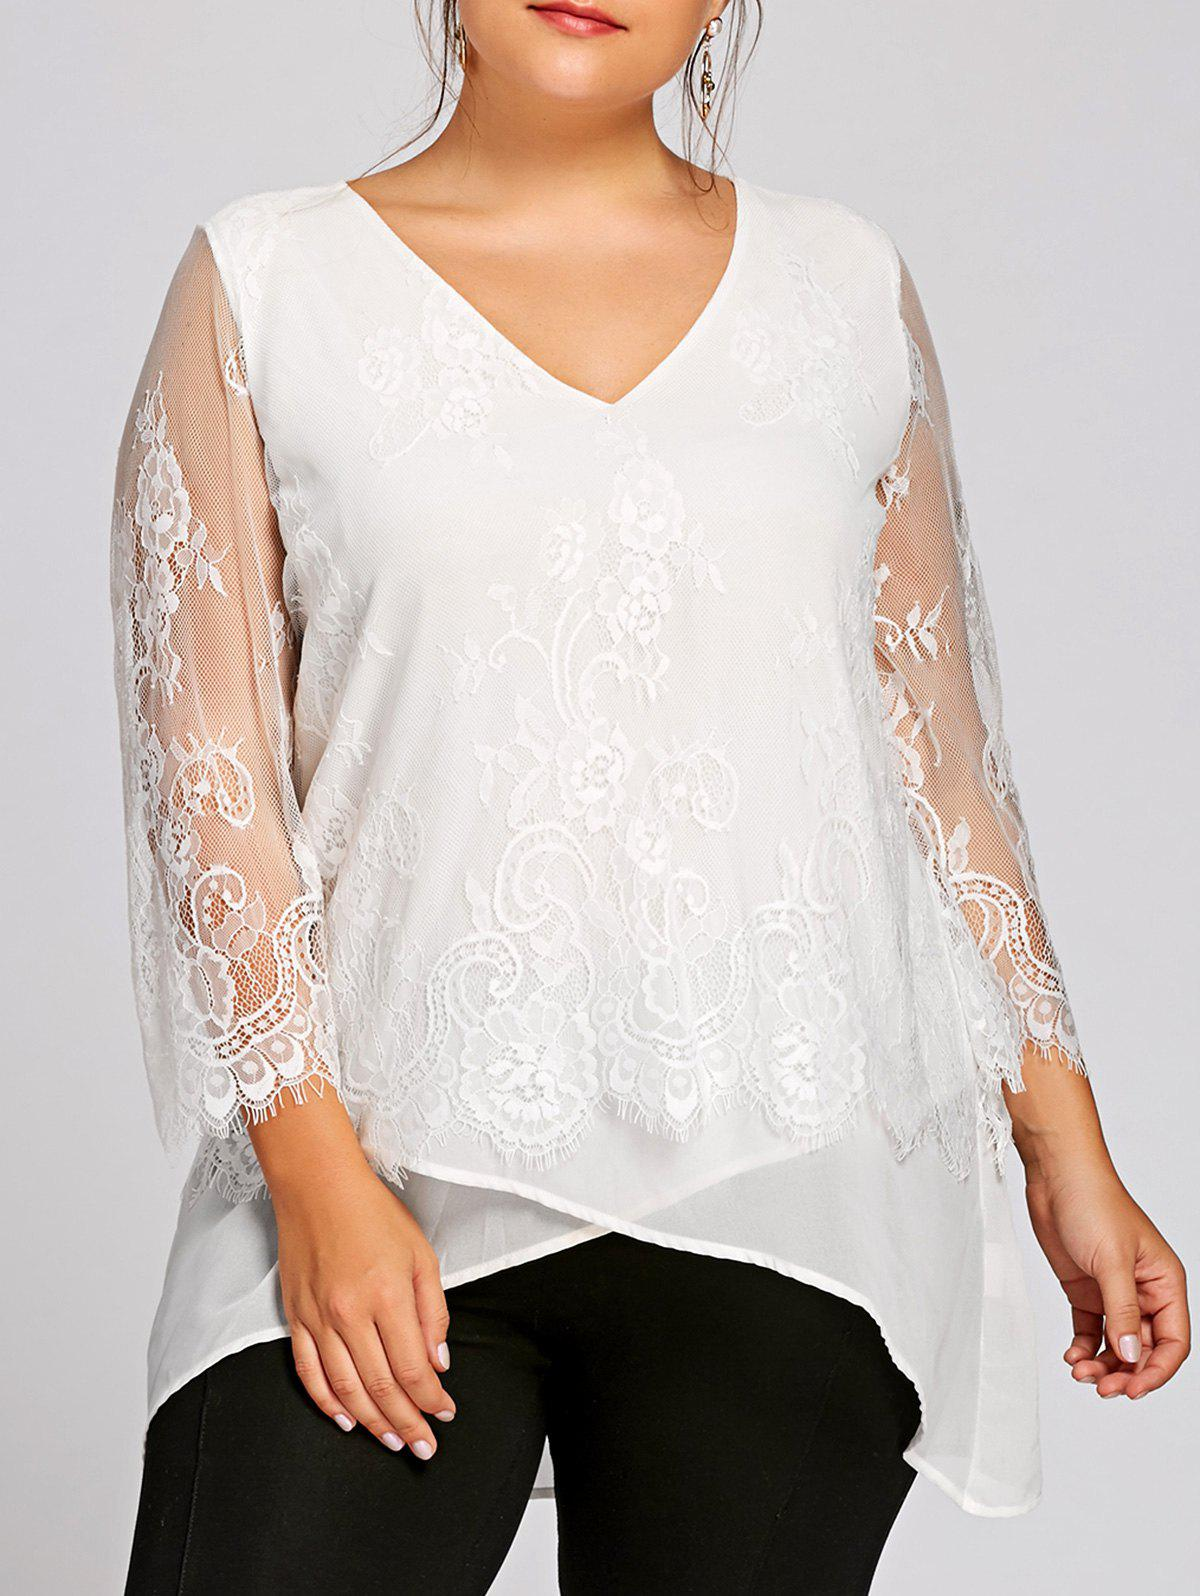 Plus Size Lace Panel V Neck BlouseWOMEN<br><br>Size: XL; Color: WHITE; Material: Polyester; Shirt Length: Long; Sleeve Length: Three Quarter; Collar: V-Neck; Style: Fashion; Season: Fall,Spring; Embellishment: Lace; Pattern Type: Floral; Weight: 0.2200kg; Package Contents: 1 x Blouse;